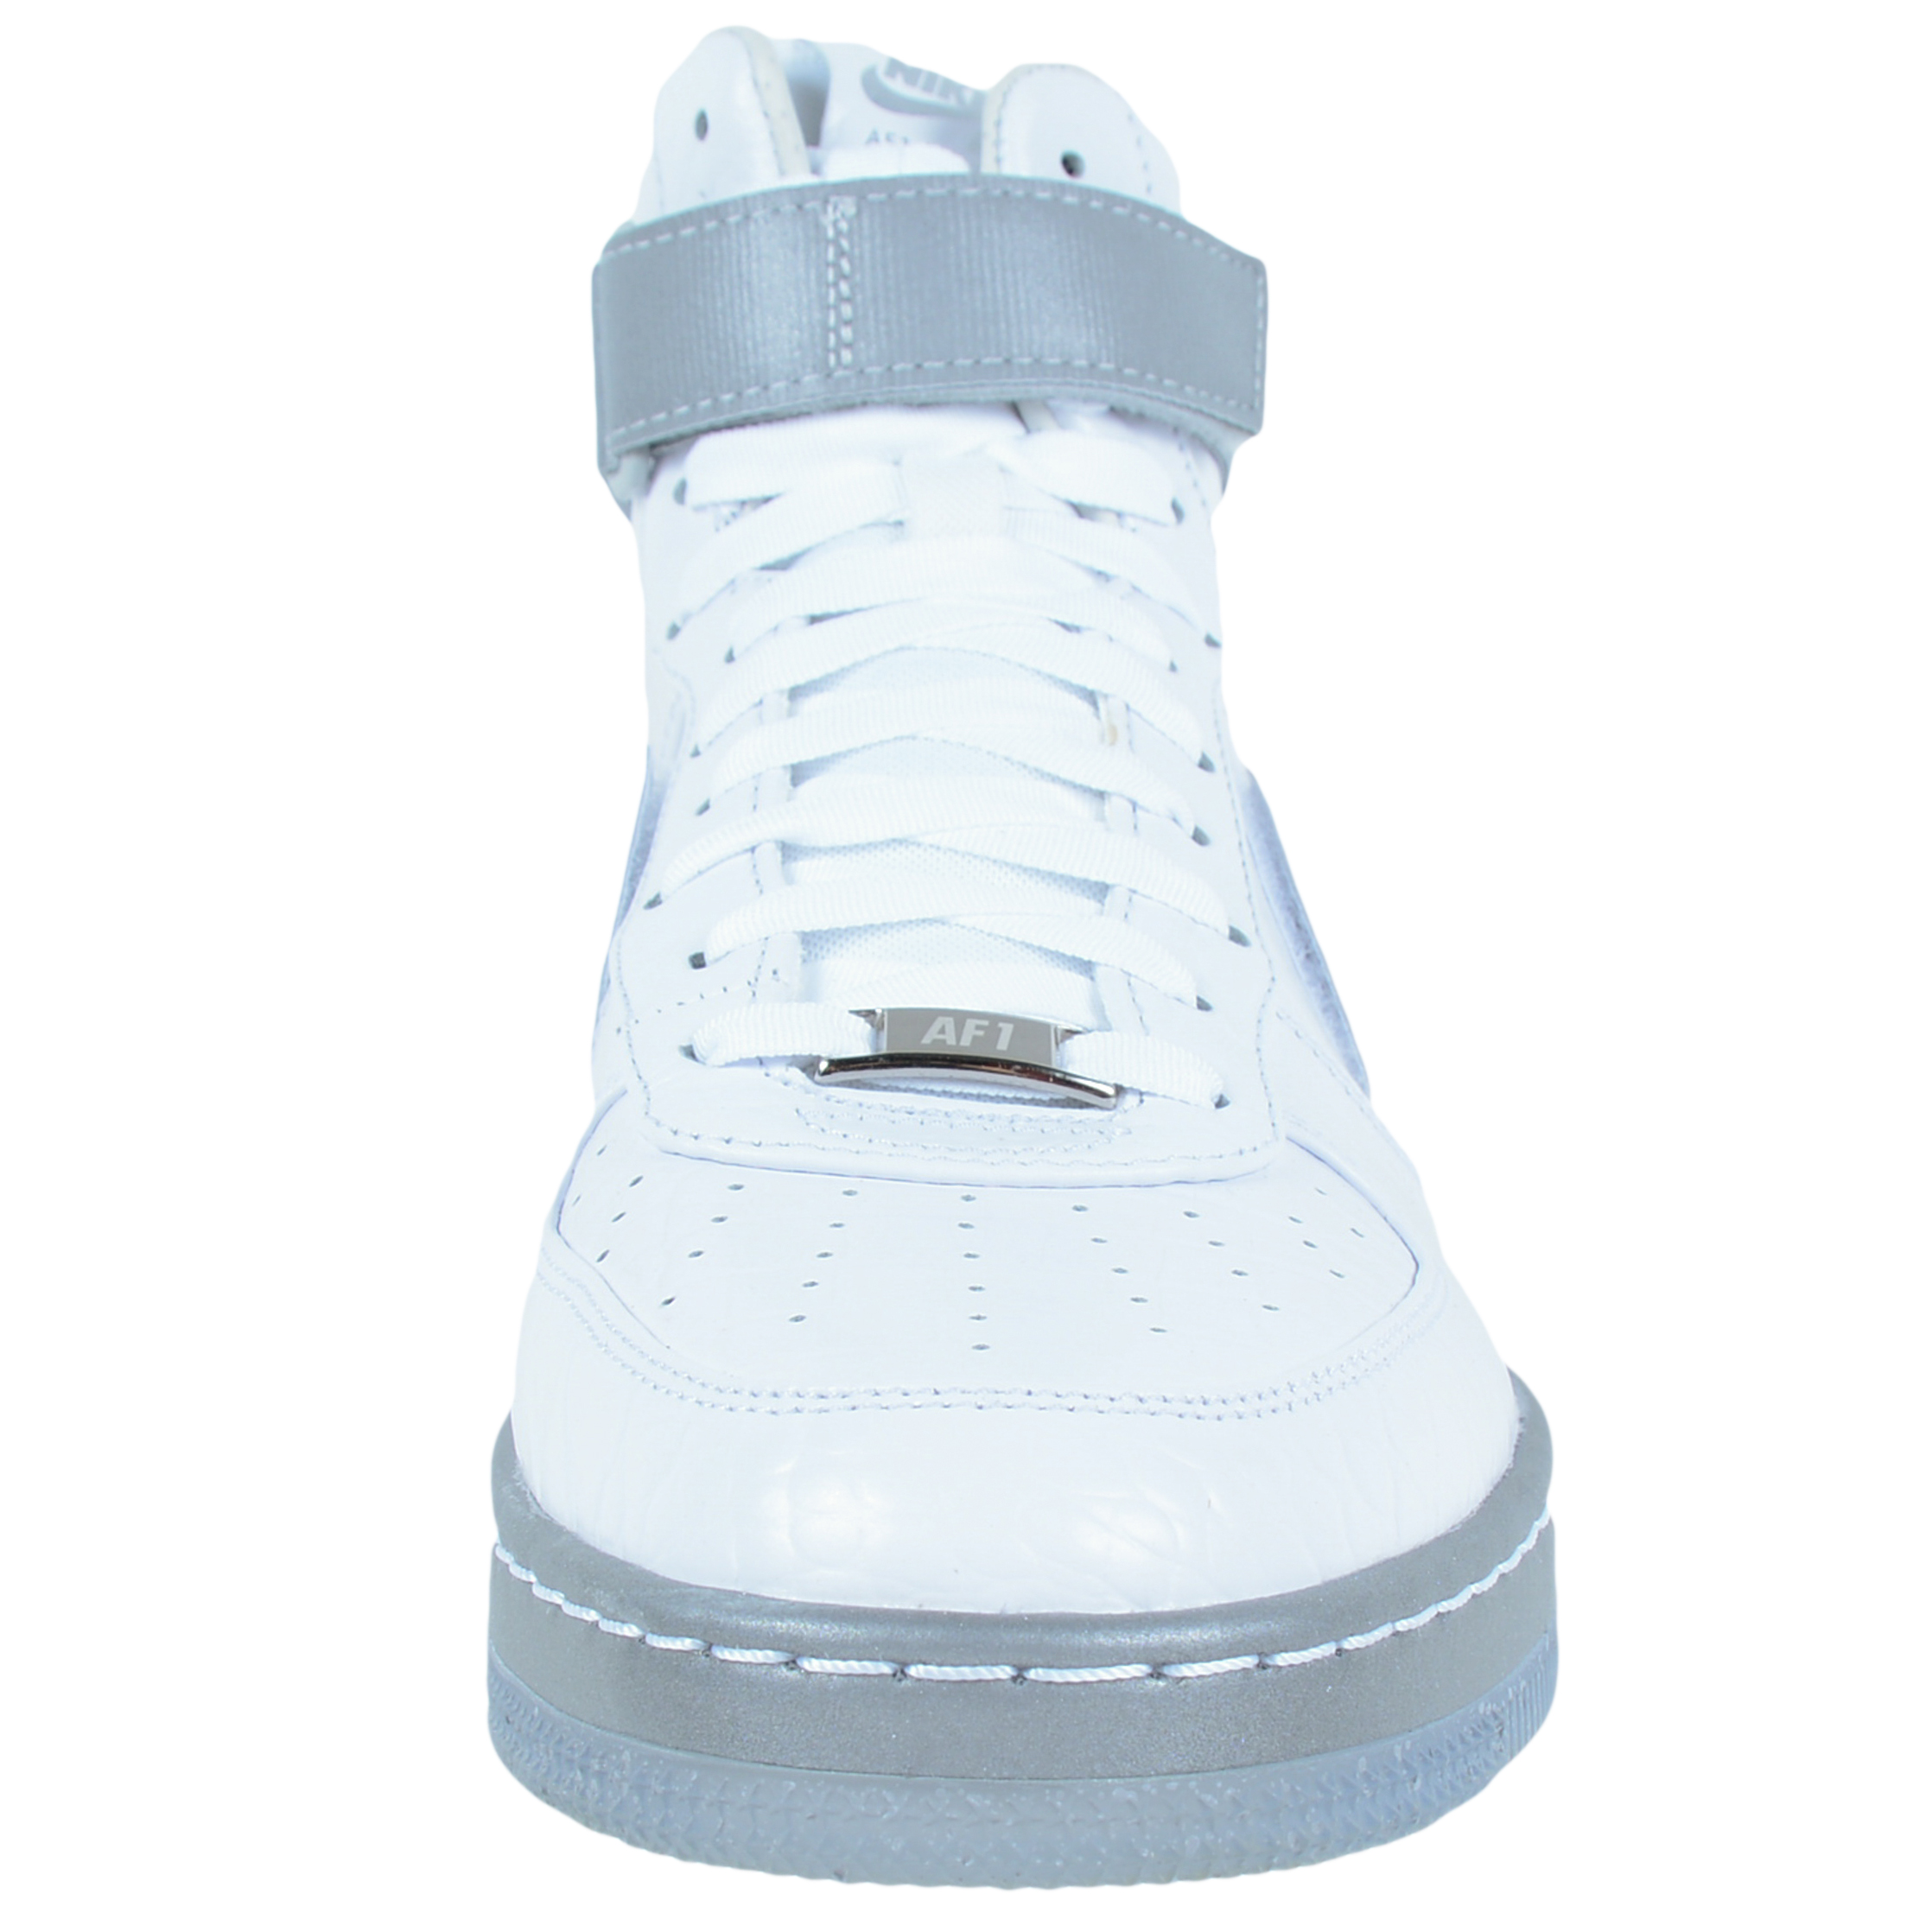 differently c610a 6e6a5 ... shop nike air force 1 downtown hi lw qs hologram white white 632360 100  6a5a7 123ca